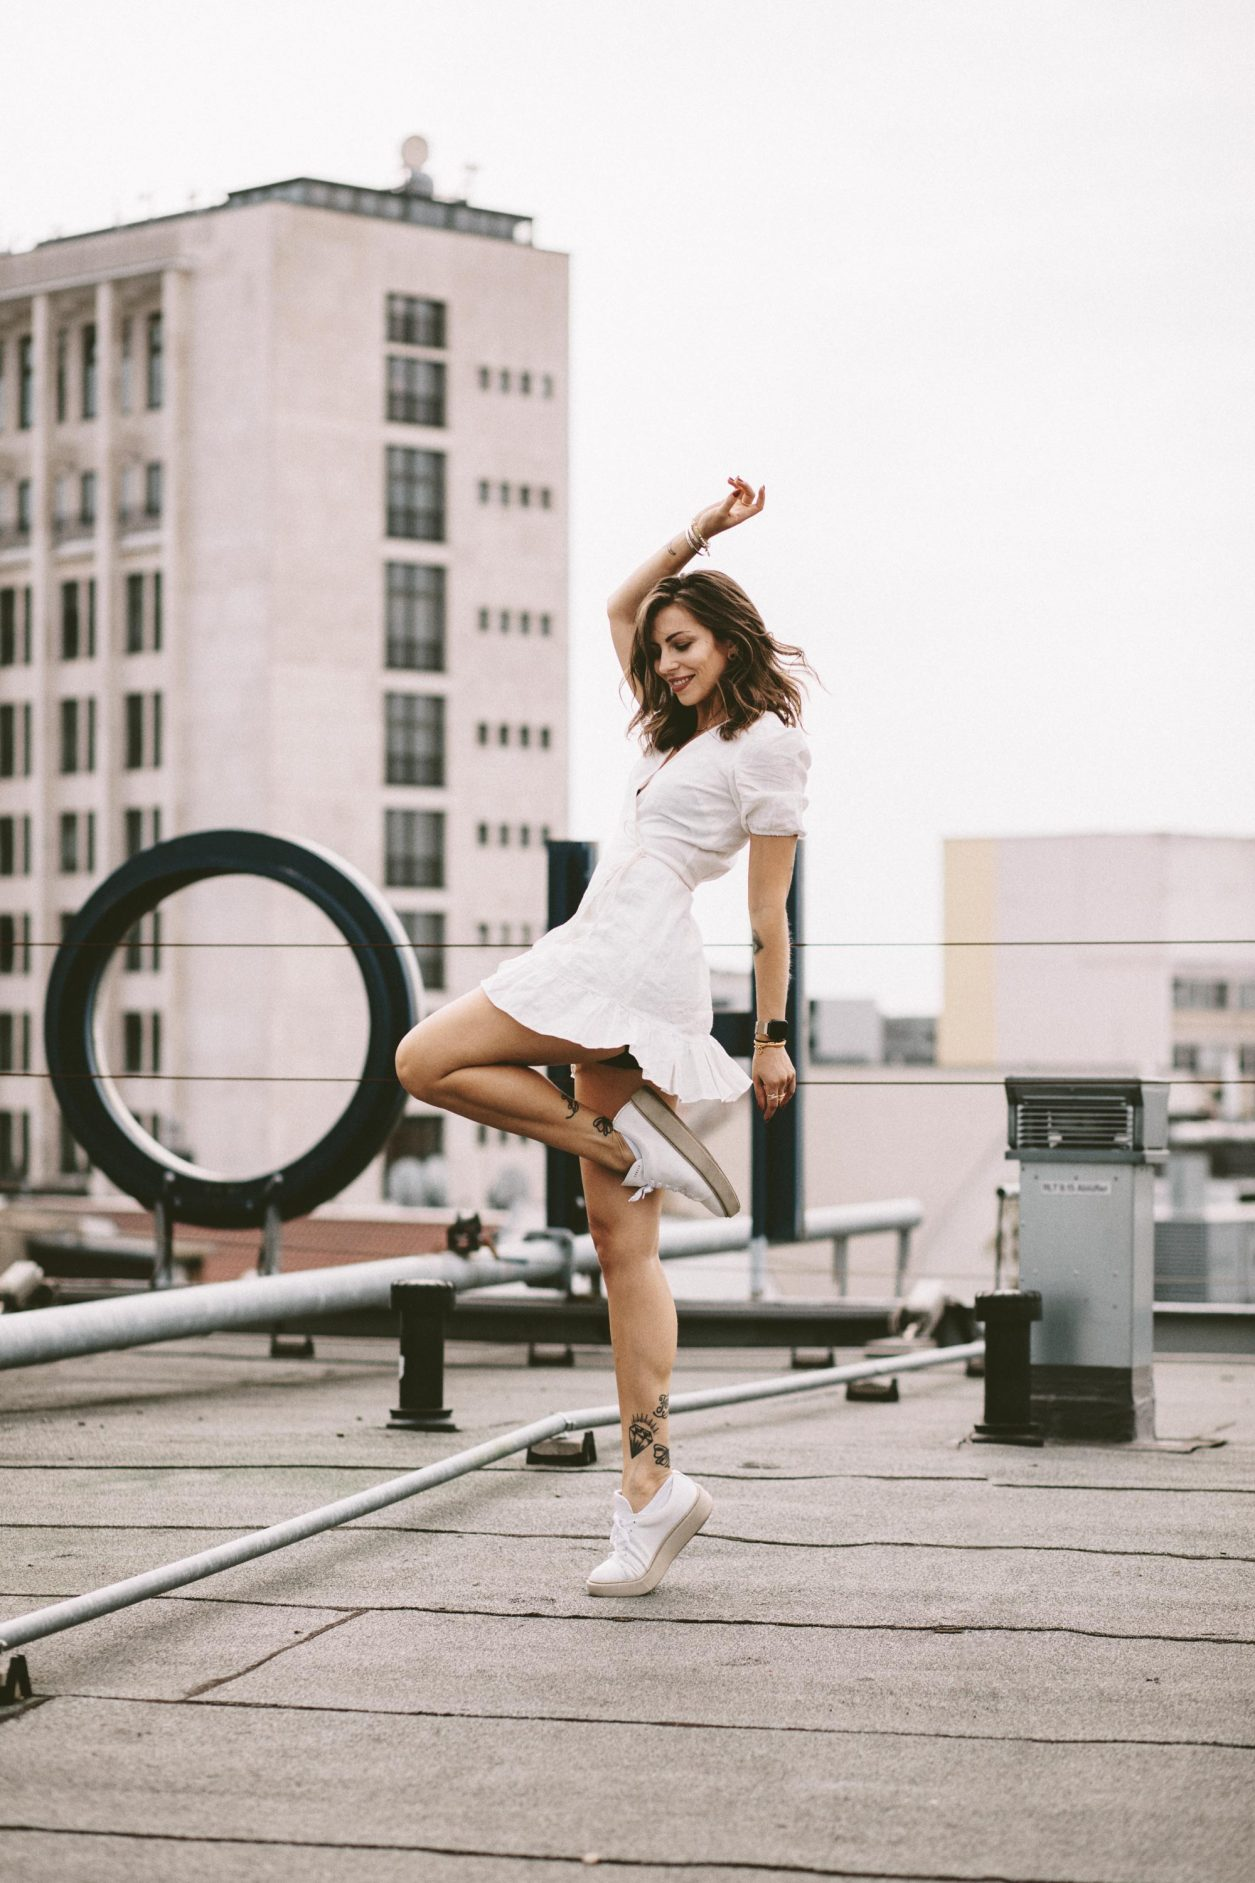 Anzeige   Fashion and beauty blogger from Berlin, Germany - Masha Sedgwick on the roof of Hotel Zoo, summer outfit inspiration: cute white linen wrapped mini dress, golden jewelry from Ariane Ernst, Thomas Sabo, Bulgari ring, white Coach sneaker   Inked fashion blogger, minimalistic, chic, effortless cool, streetstyle inspiration, ootd, photographer Tonya Matyu